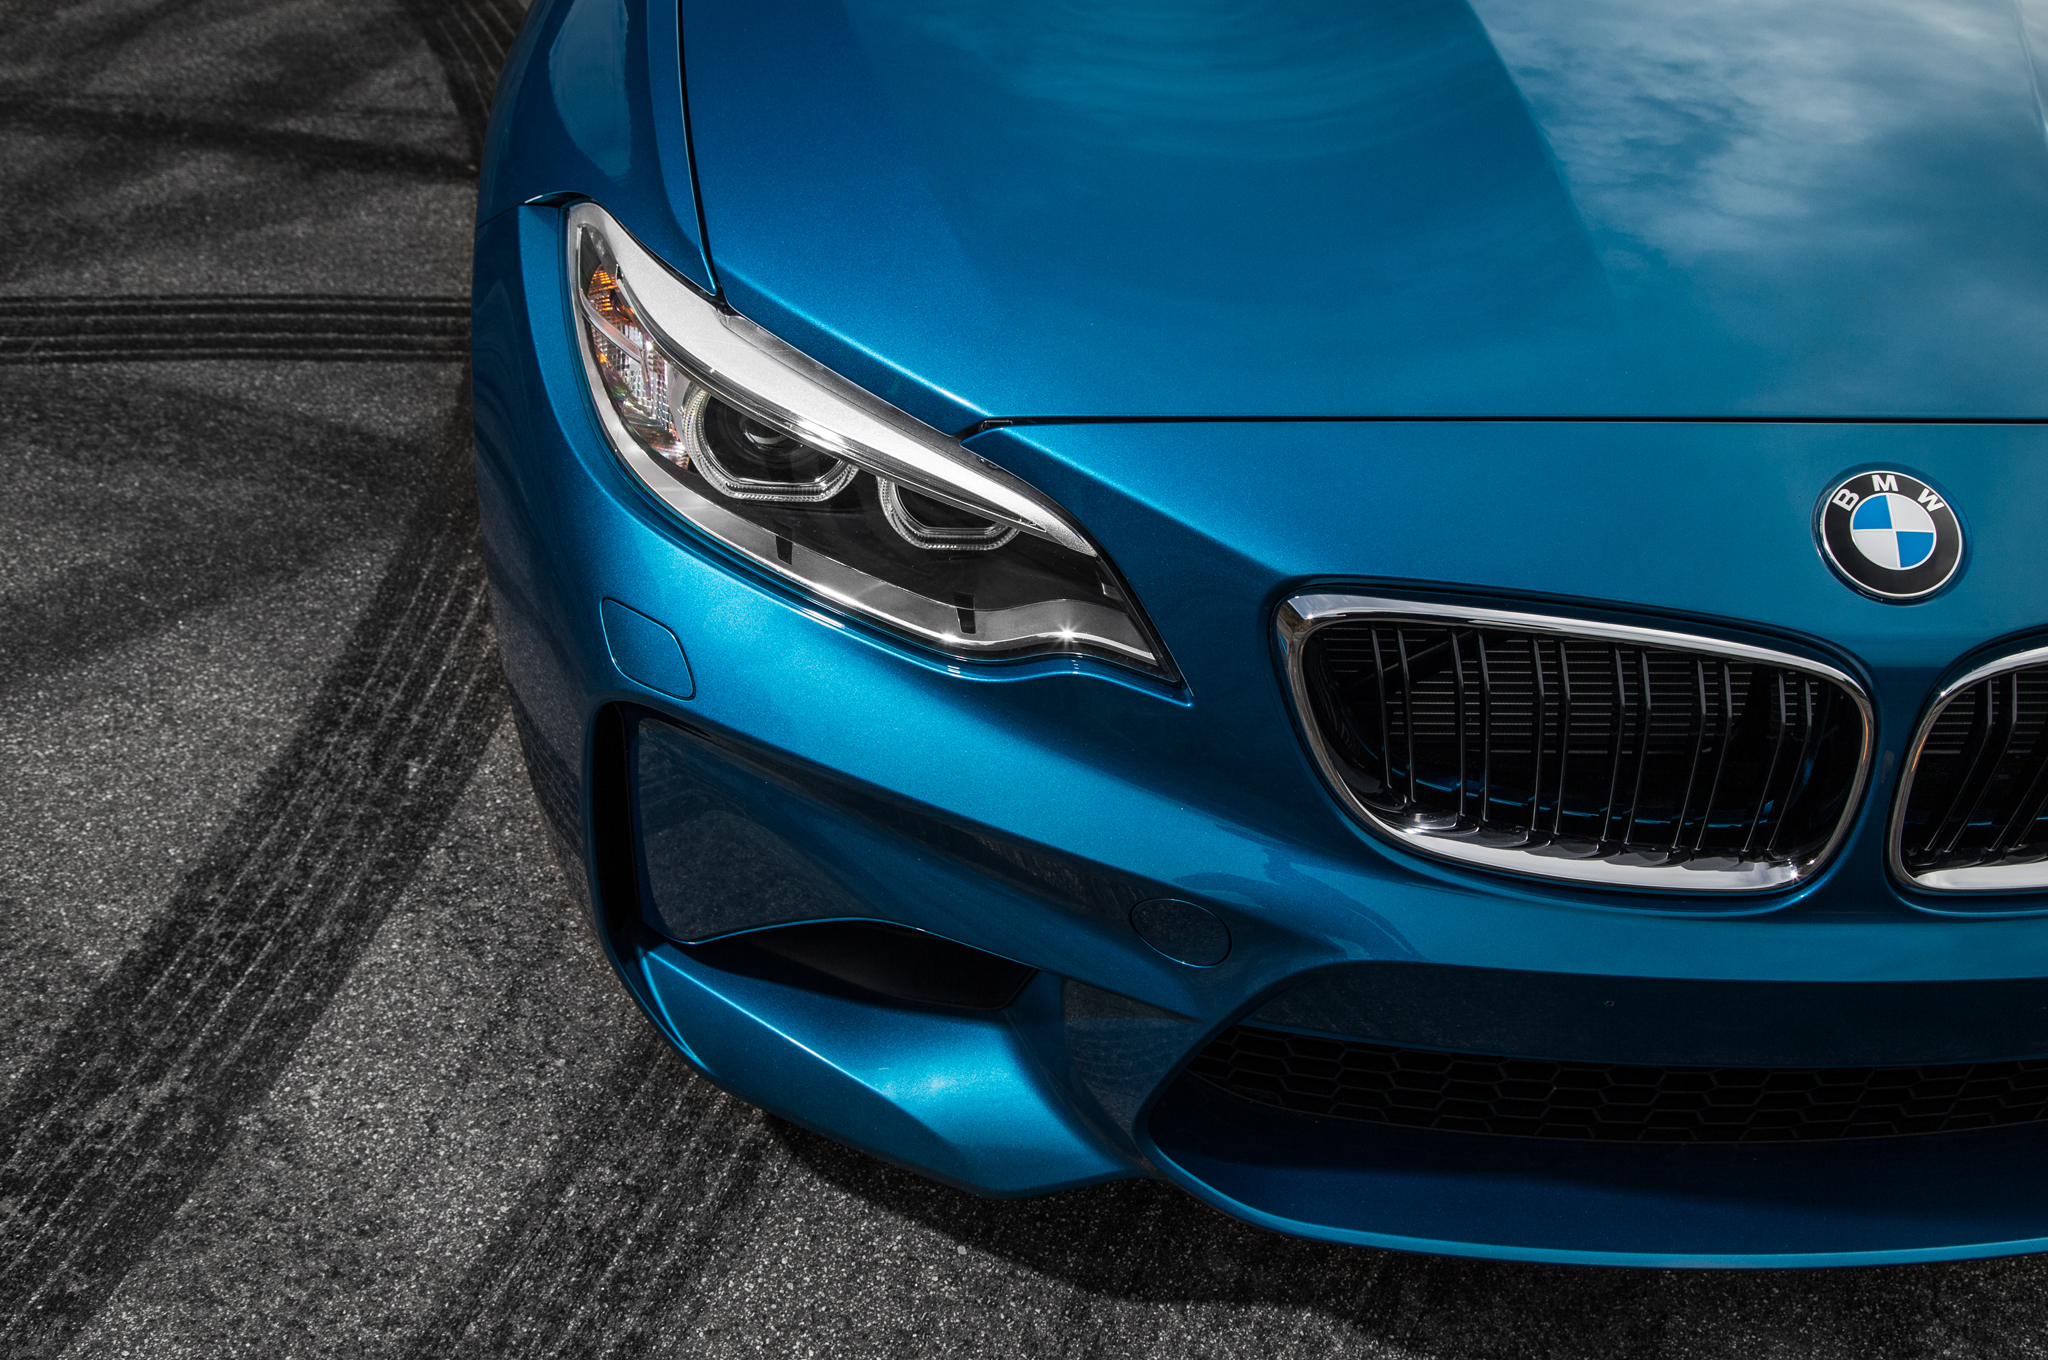 2016 BMW M2 Exterior View Grille And Headlight (Photo 35 of 61)